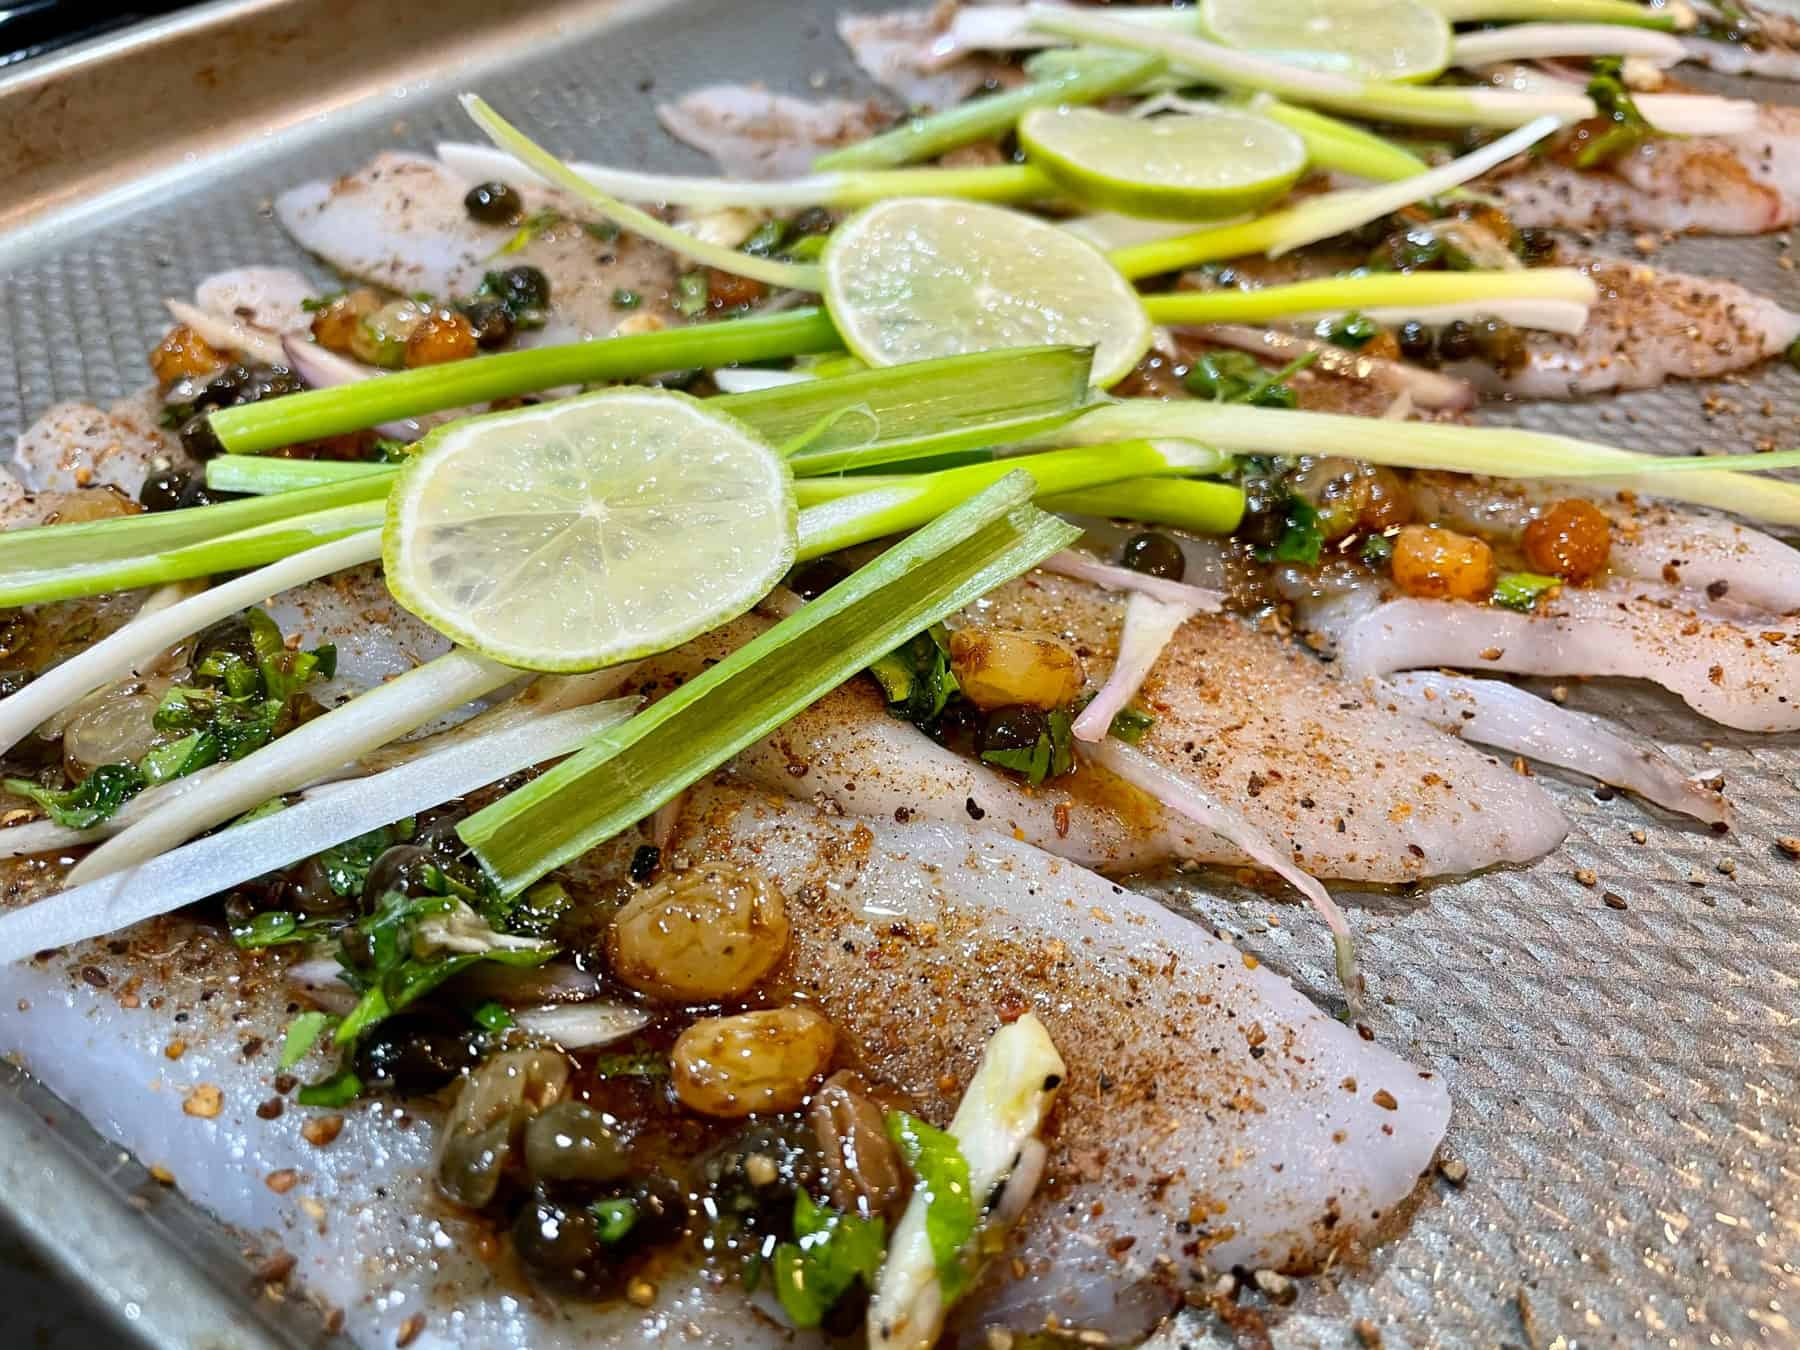 Solel and limes and scallions on a pan